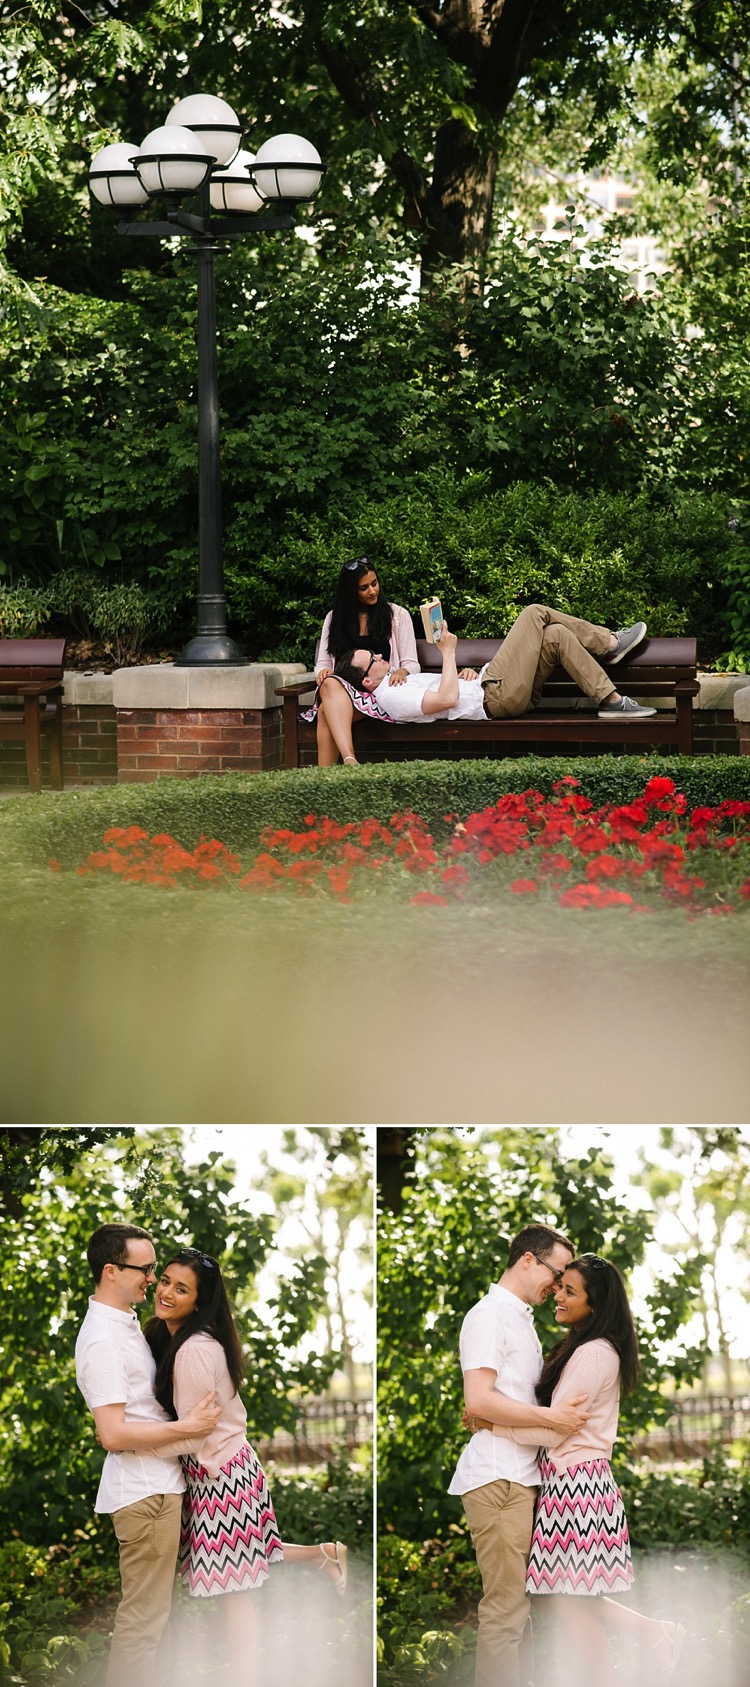 london canary wharf i heart london engagement photoshoot westferry circus river thames wedding lily sawyer photo